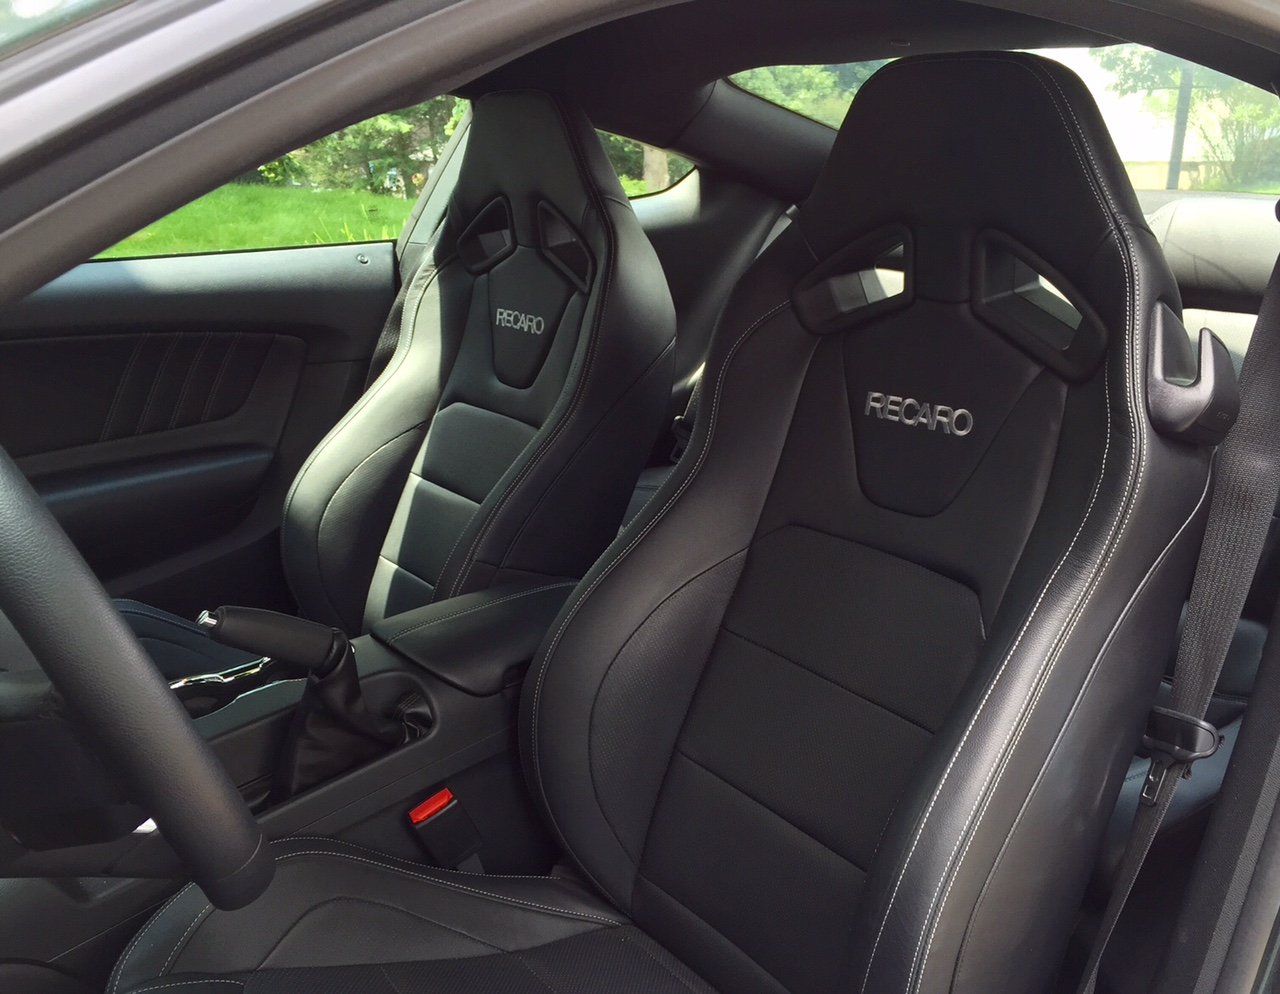 2015 Ford Mustang Seats